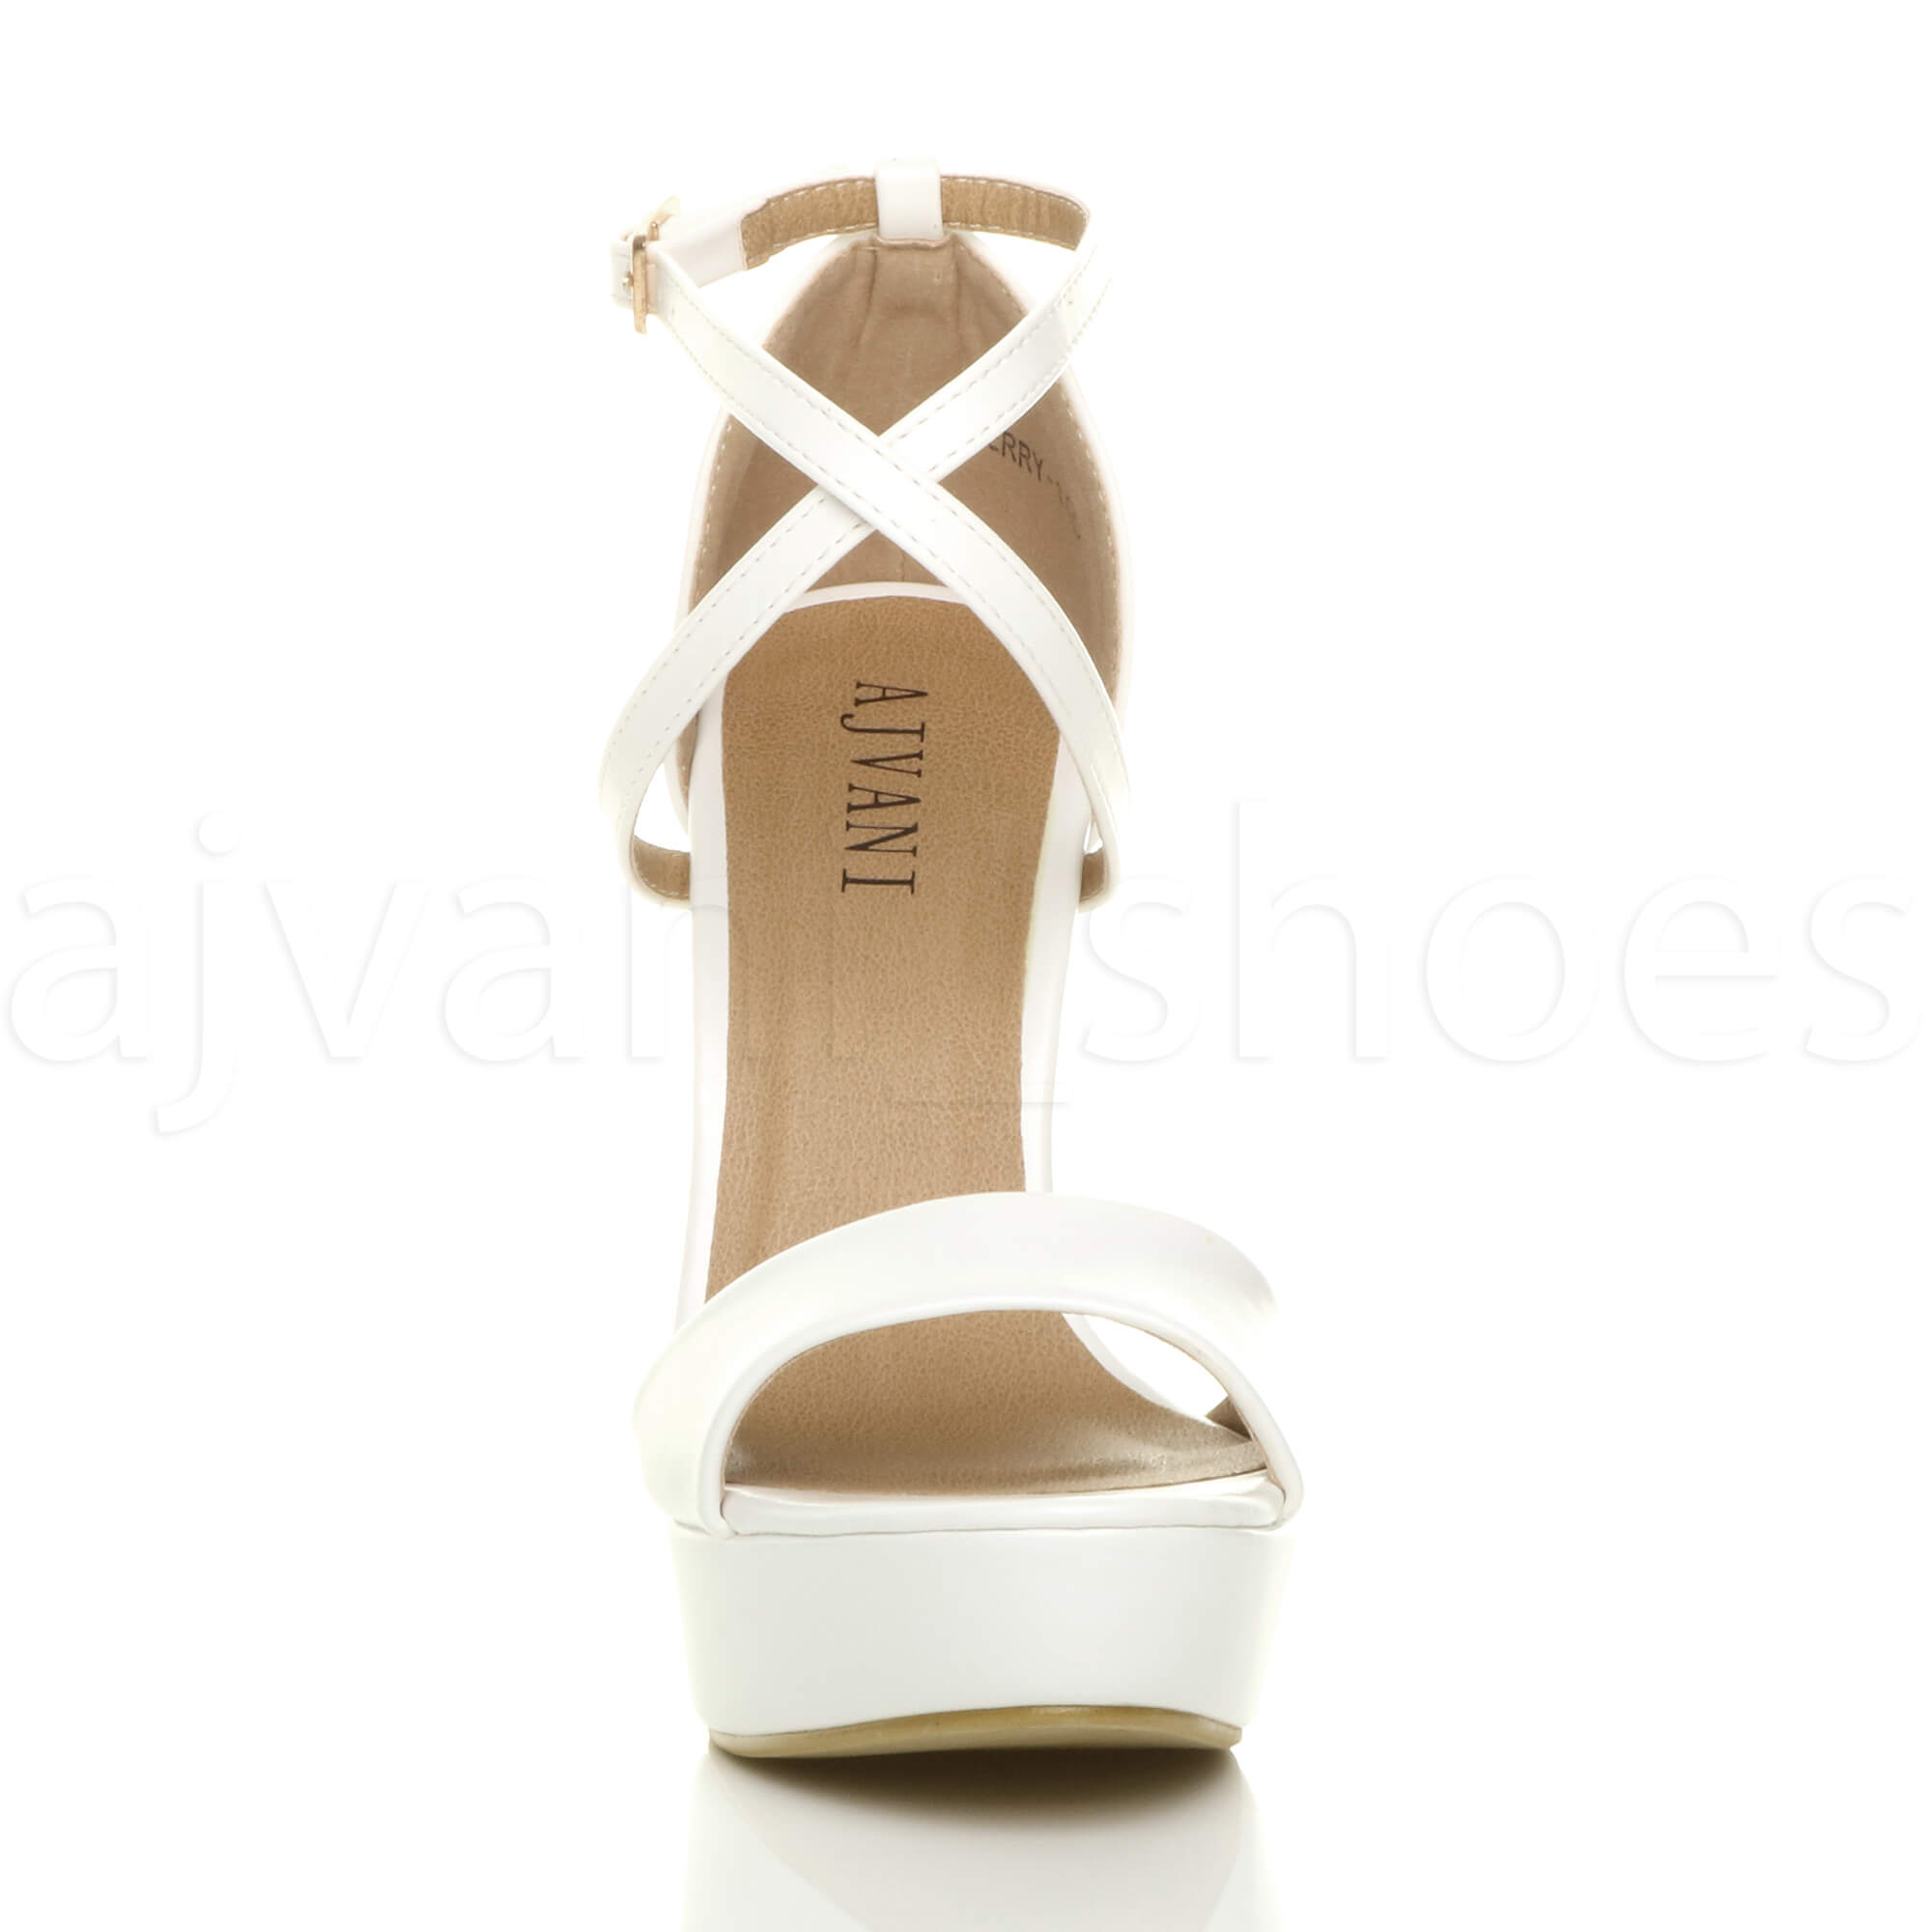 WOMENS-LADIES-PLATFORM-HIGH-HEEL-PEEP-TOE-CROSS-OVER-STRAPPY-SANDALS-SHOES-SIZE thumbnail 146